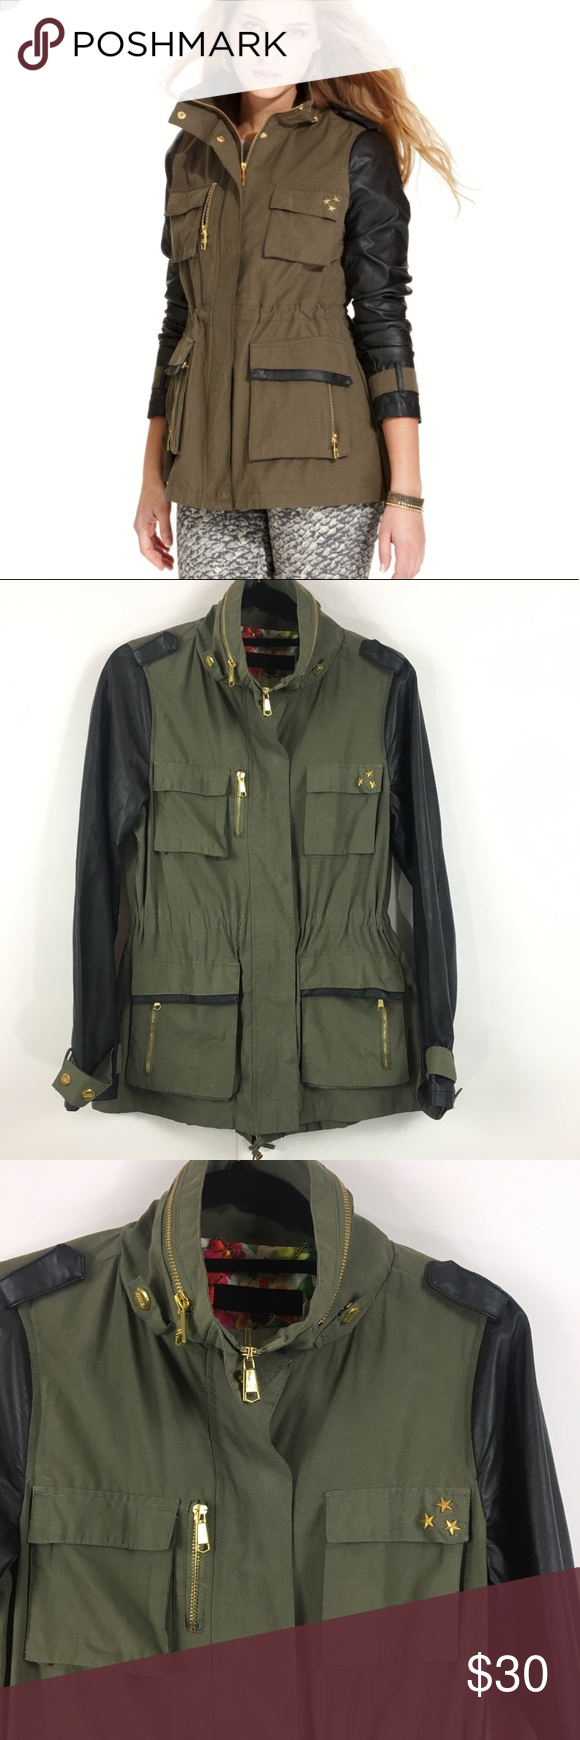 c41e2126f0ad2 Steve Madden Anorak green jacket faux leather M Adorable Steve Madden  utility style windbreaker or lightweight jacket with fun faux leather  sleeves and a ...